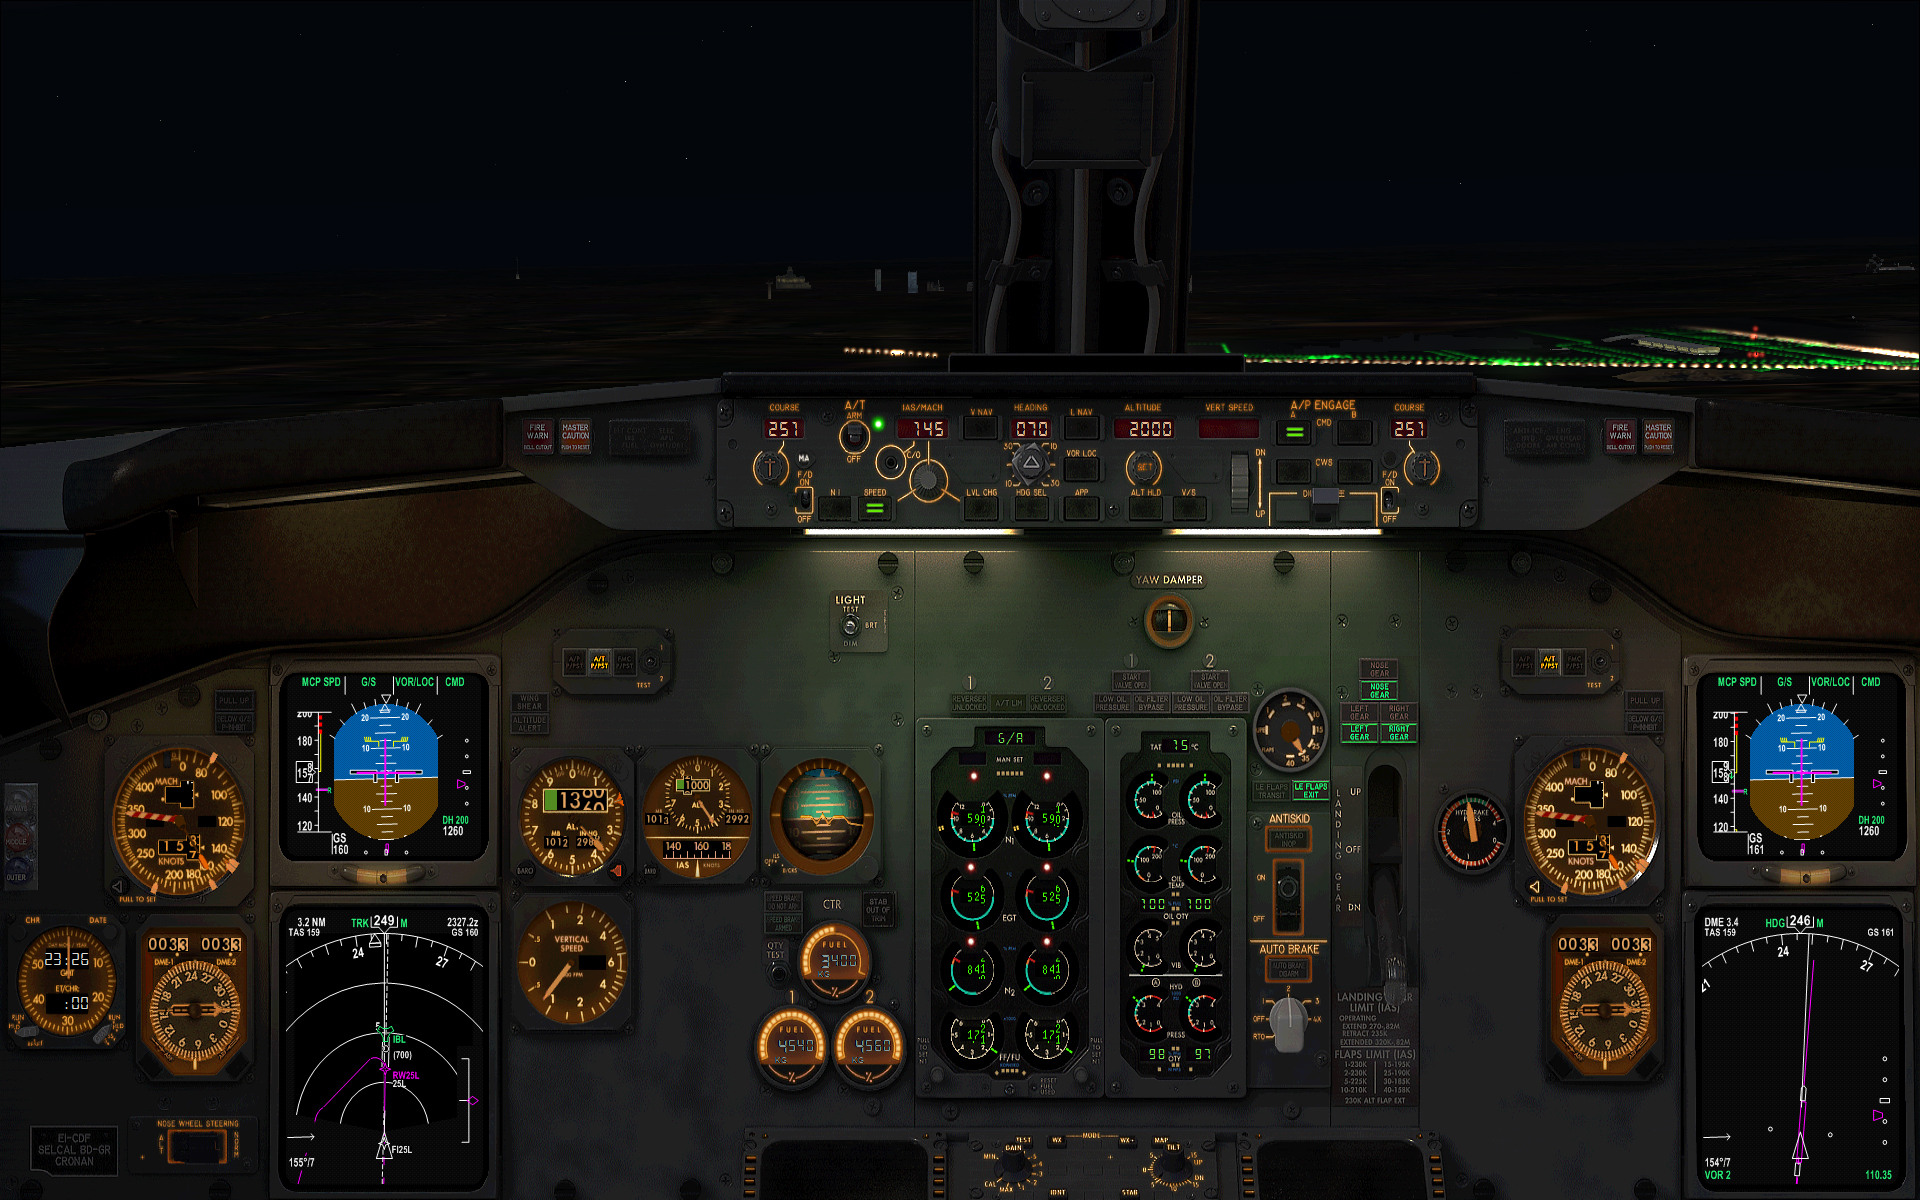 helicopter simulator free download with 737 Pilot In  Mand Evolution Fsx on 1835 Fsx Airbus A300 Mahan Air further 737 Pilot In  mand Evolution Fsx additionally 2755 Fsx 2 Starships Uss Enterprise Over The Golden Gate moreover Mining Construction Economy V 0 2 Fs17 in addition Aircraft Engine Controls.